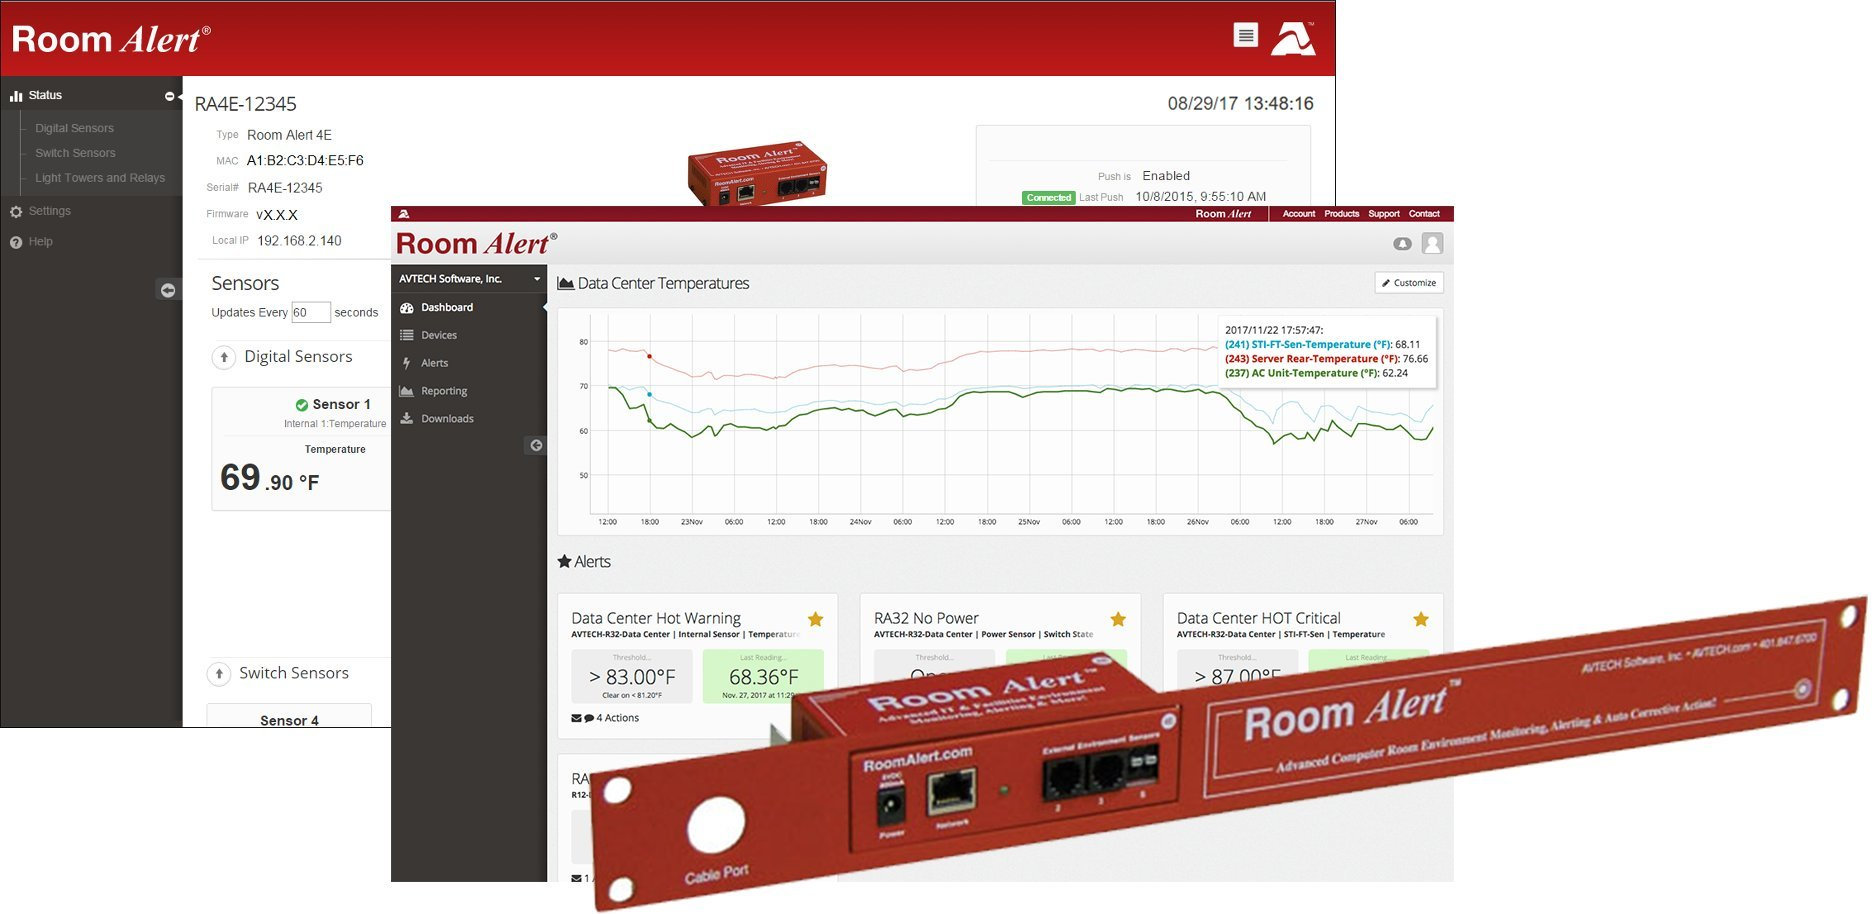 Room Alert 4ER Rack Mountable Temperature & Environment Monitor - Supports 4 external sensors, 24/7 online & software alerting and reporting, Made in the USA by Room Alert